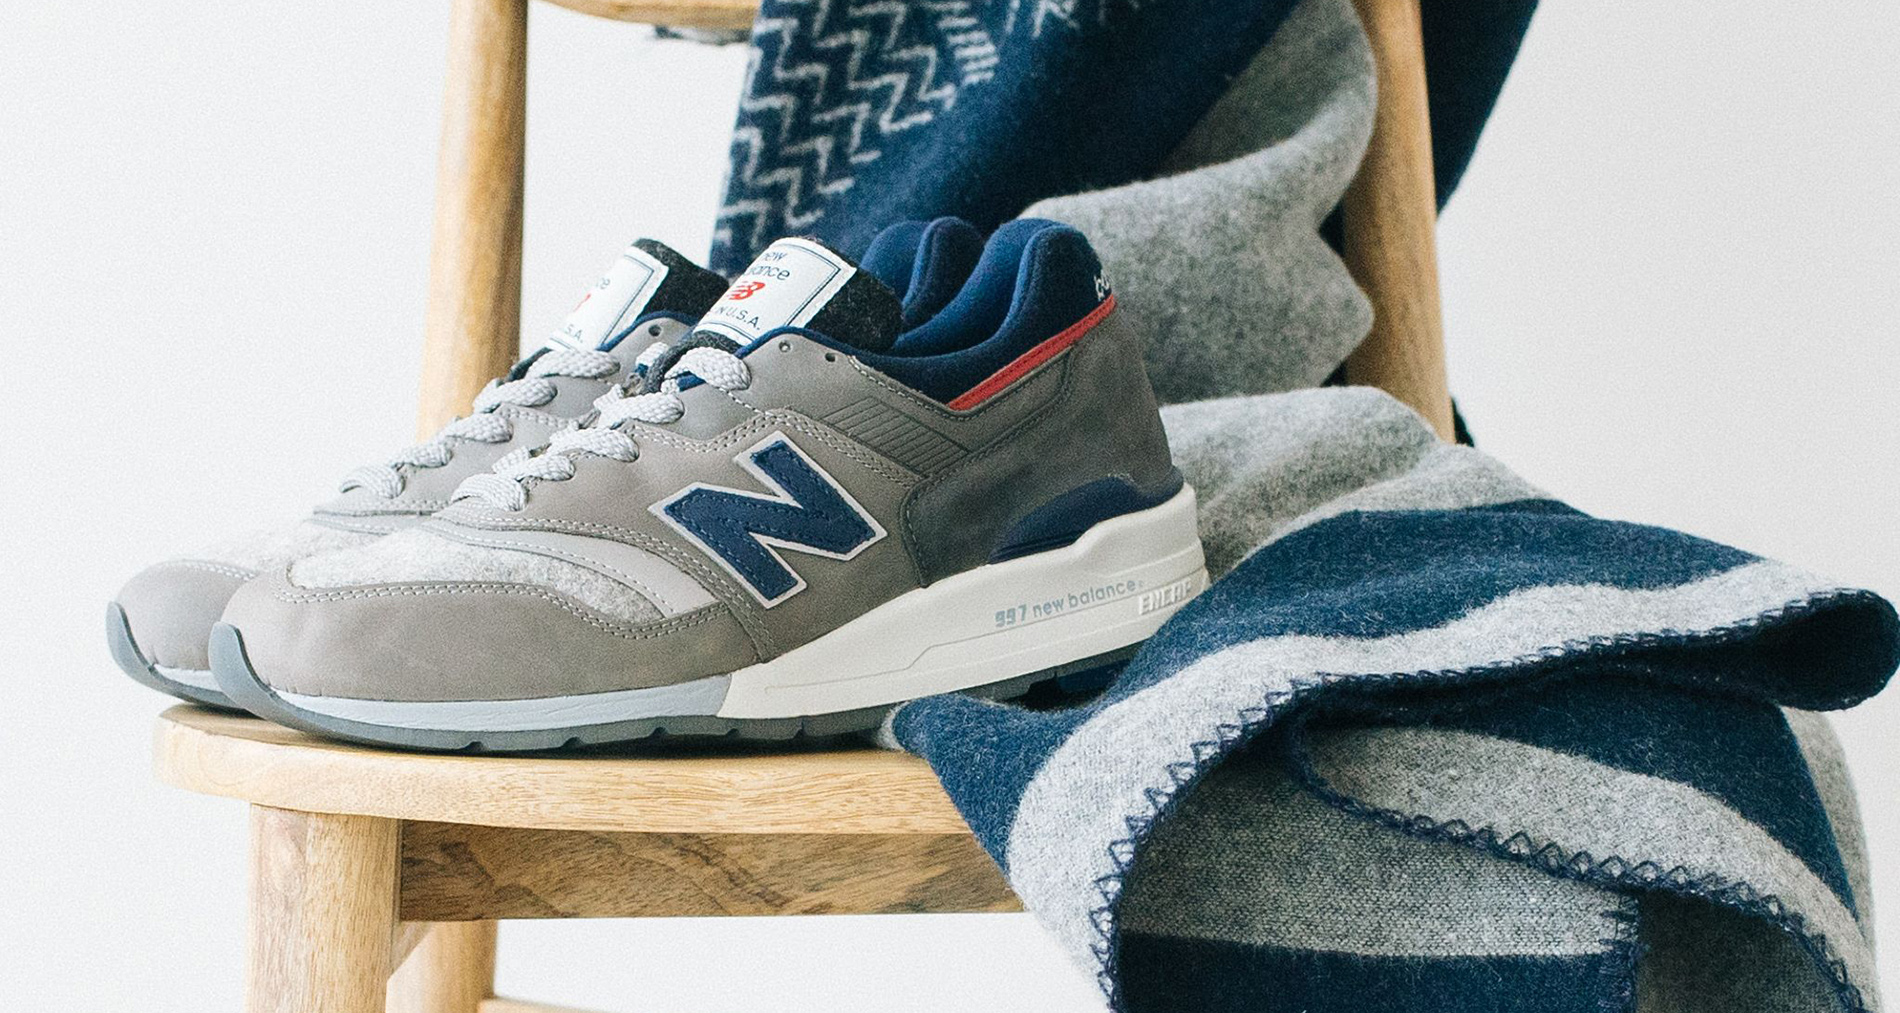 official photos d3474 4c6ef Woolrich and New Balance Debut 997 Collaboration | Nice Kicks